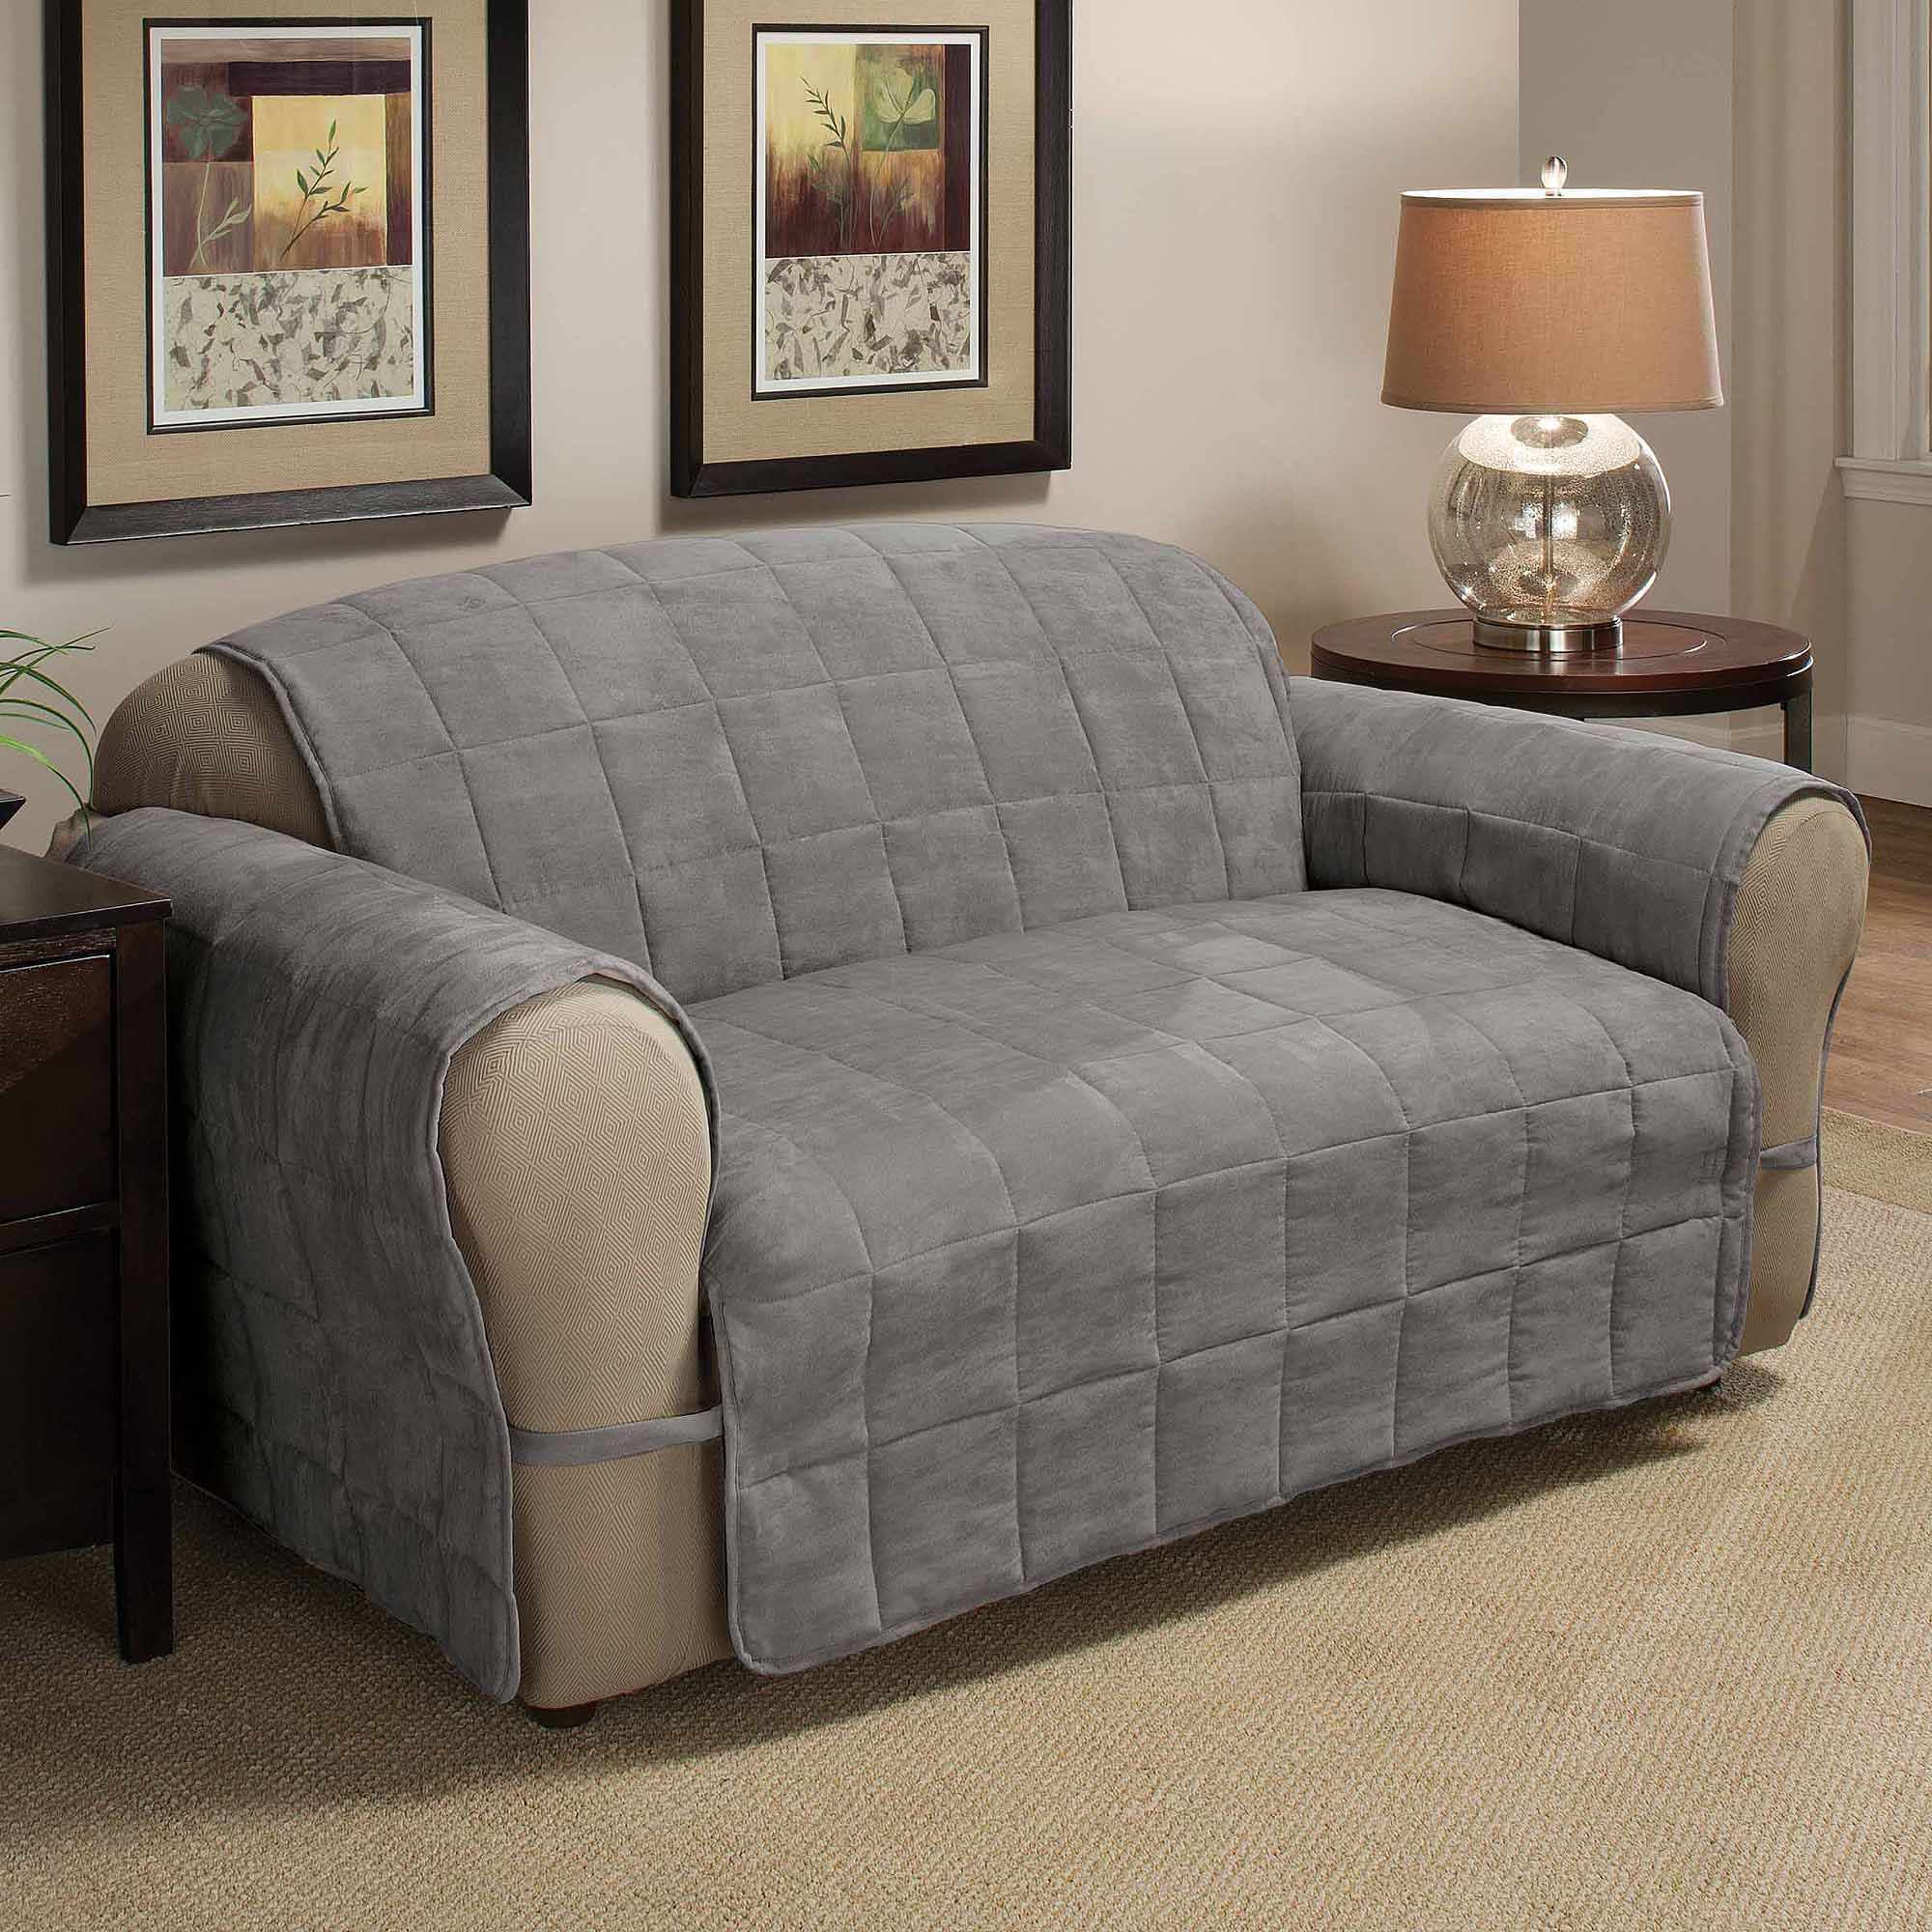 Nice Sofa Protectors Amazing 70 In Room Ideas With